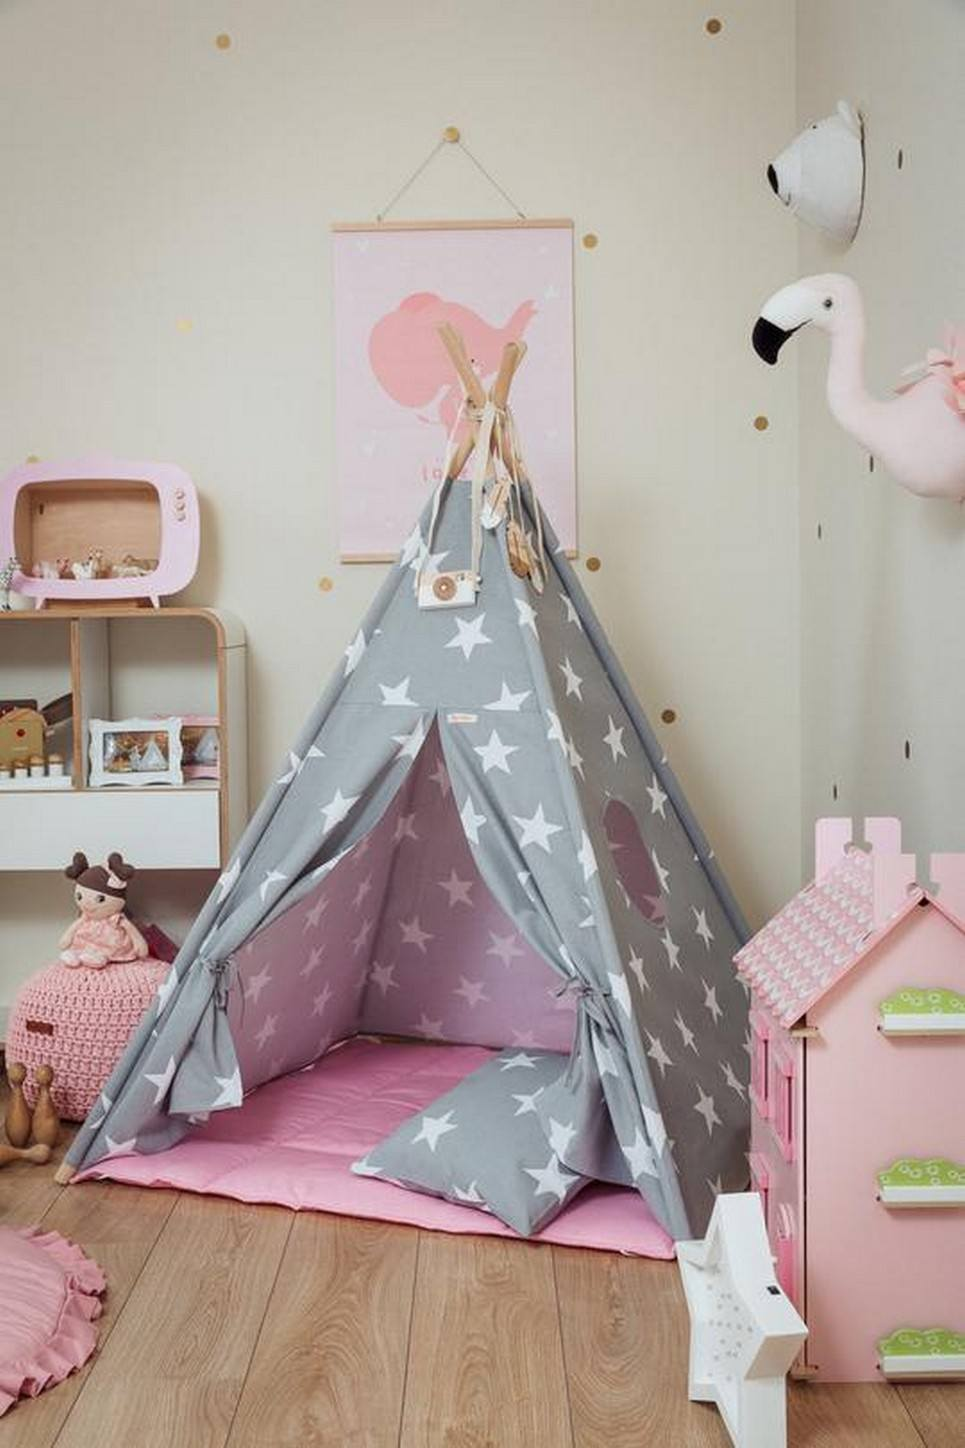 Large Stars Children's Teepee Set with Pink Mat